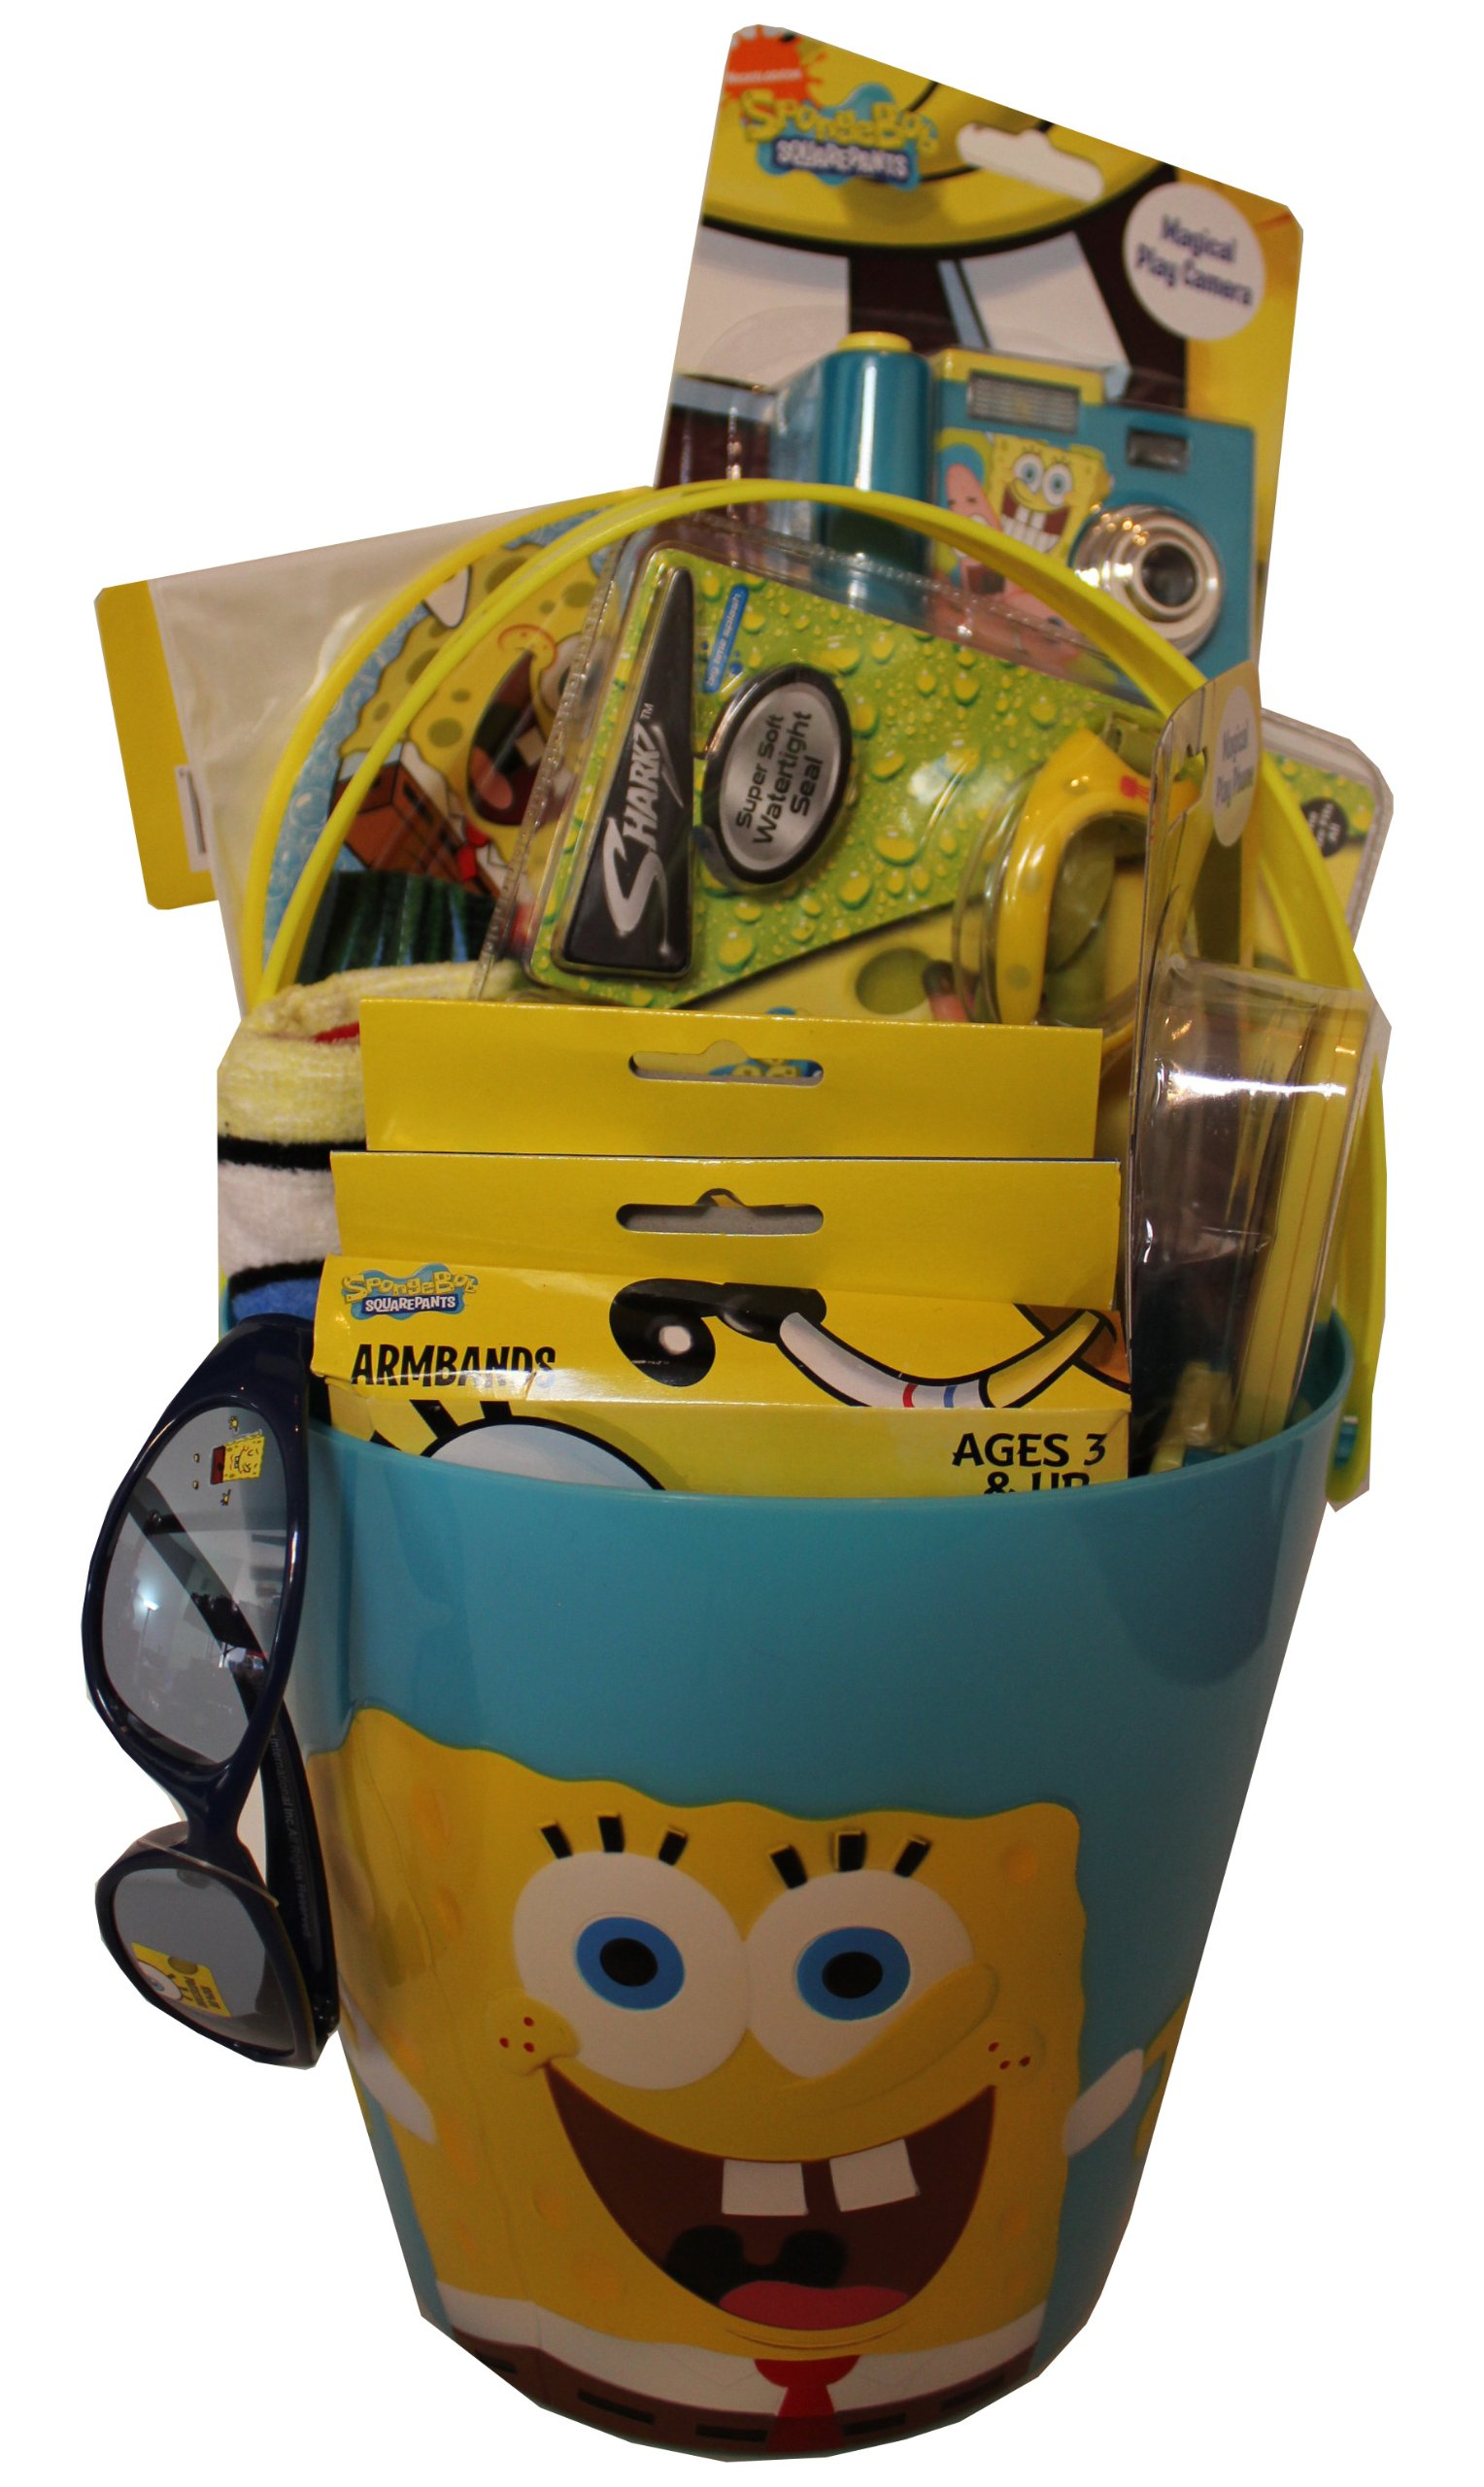 Spongebob Squarepants Summer Fun & Swim Gift Basket includes Beach Towel, Swim Ring, Goggles, and More!!